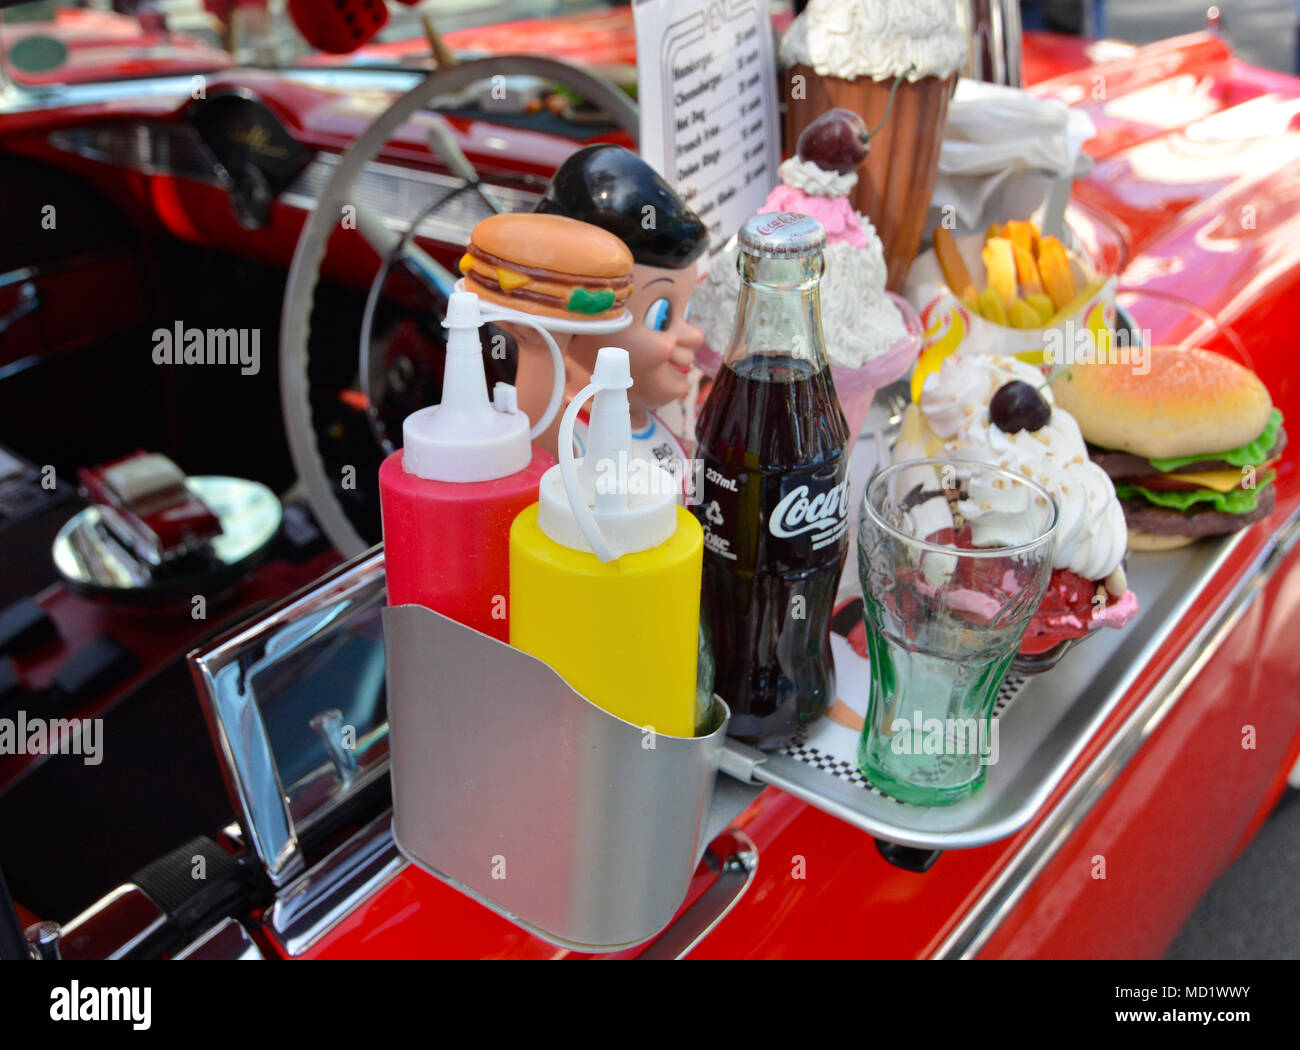 Coke Tray Stock Photos & Coke Tray Stock Images - Alamy